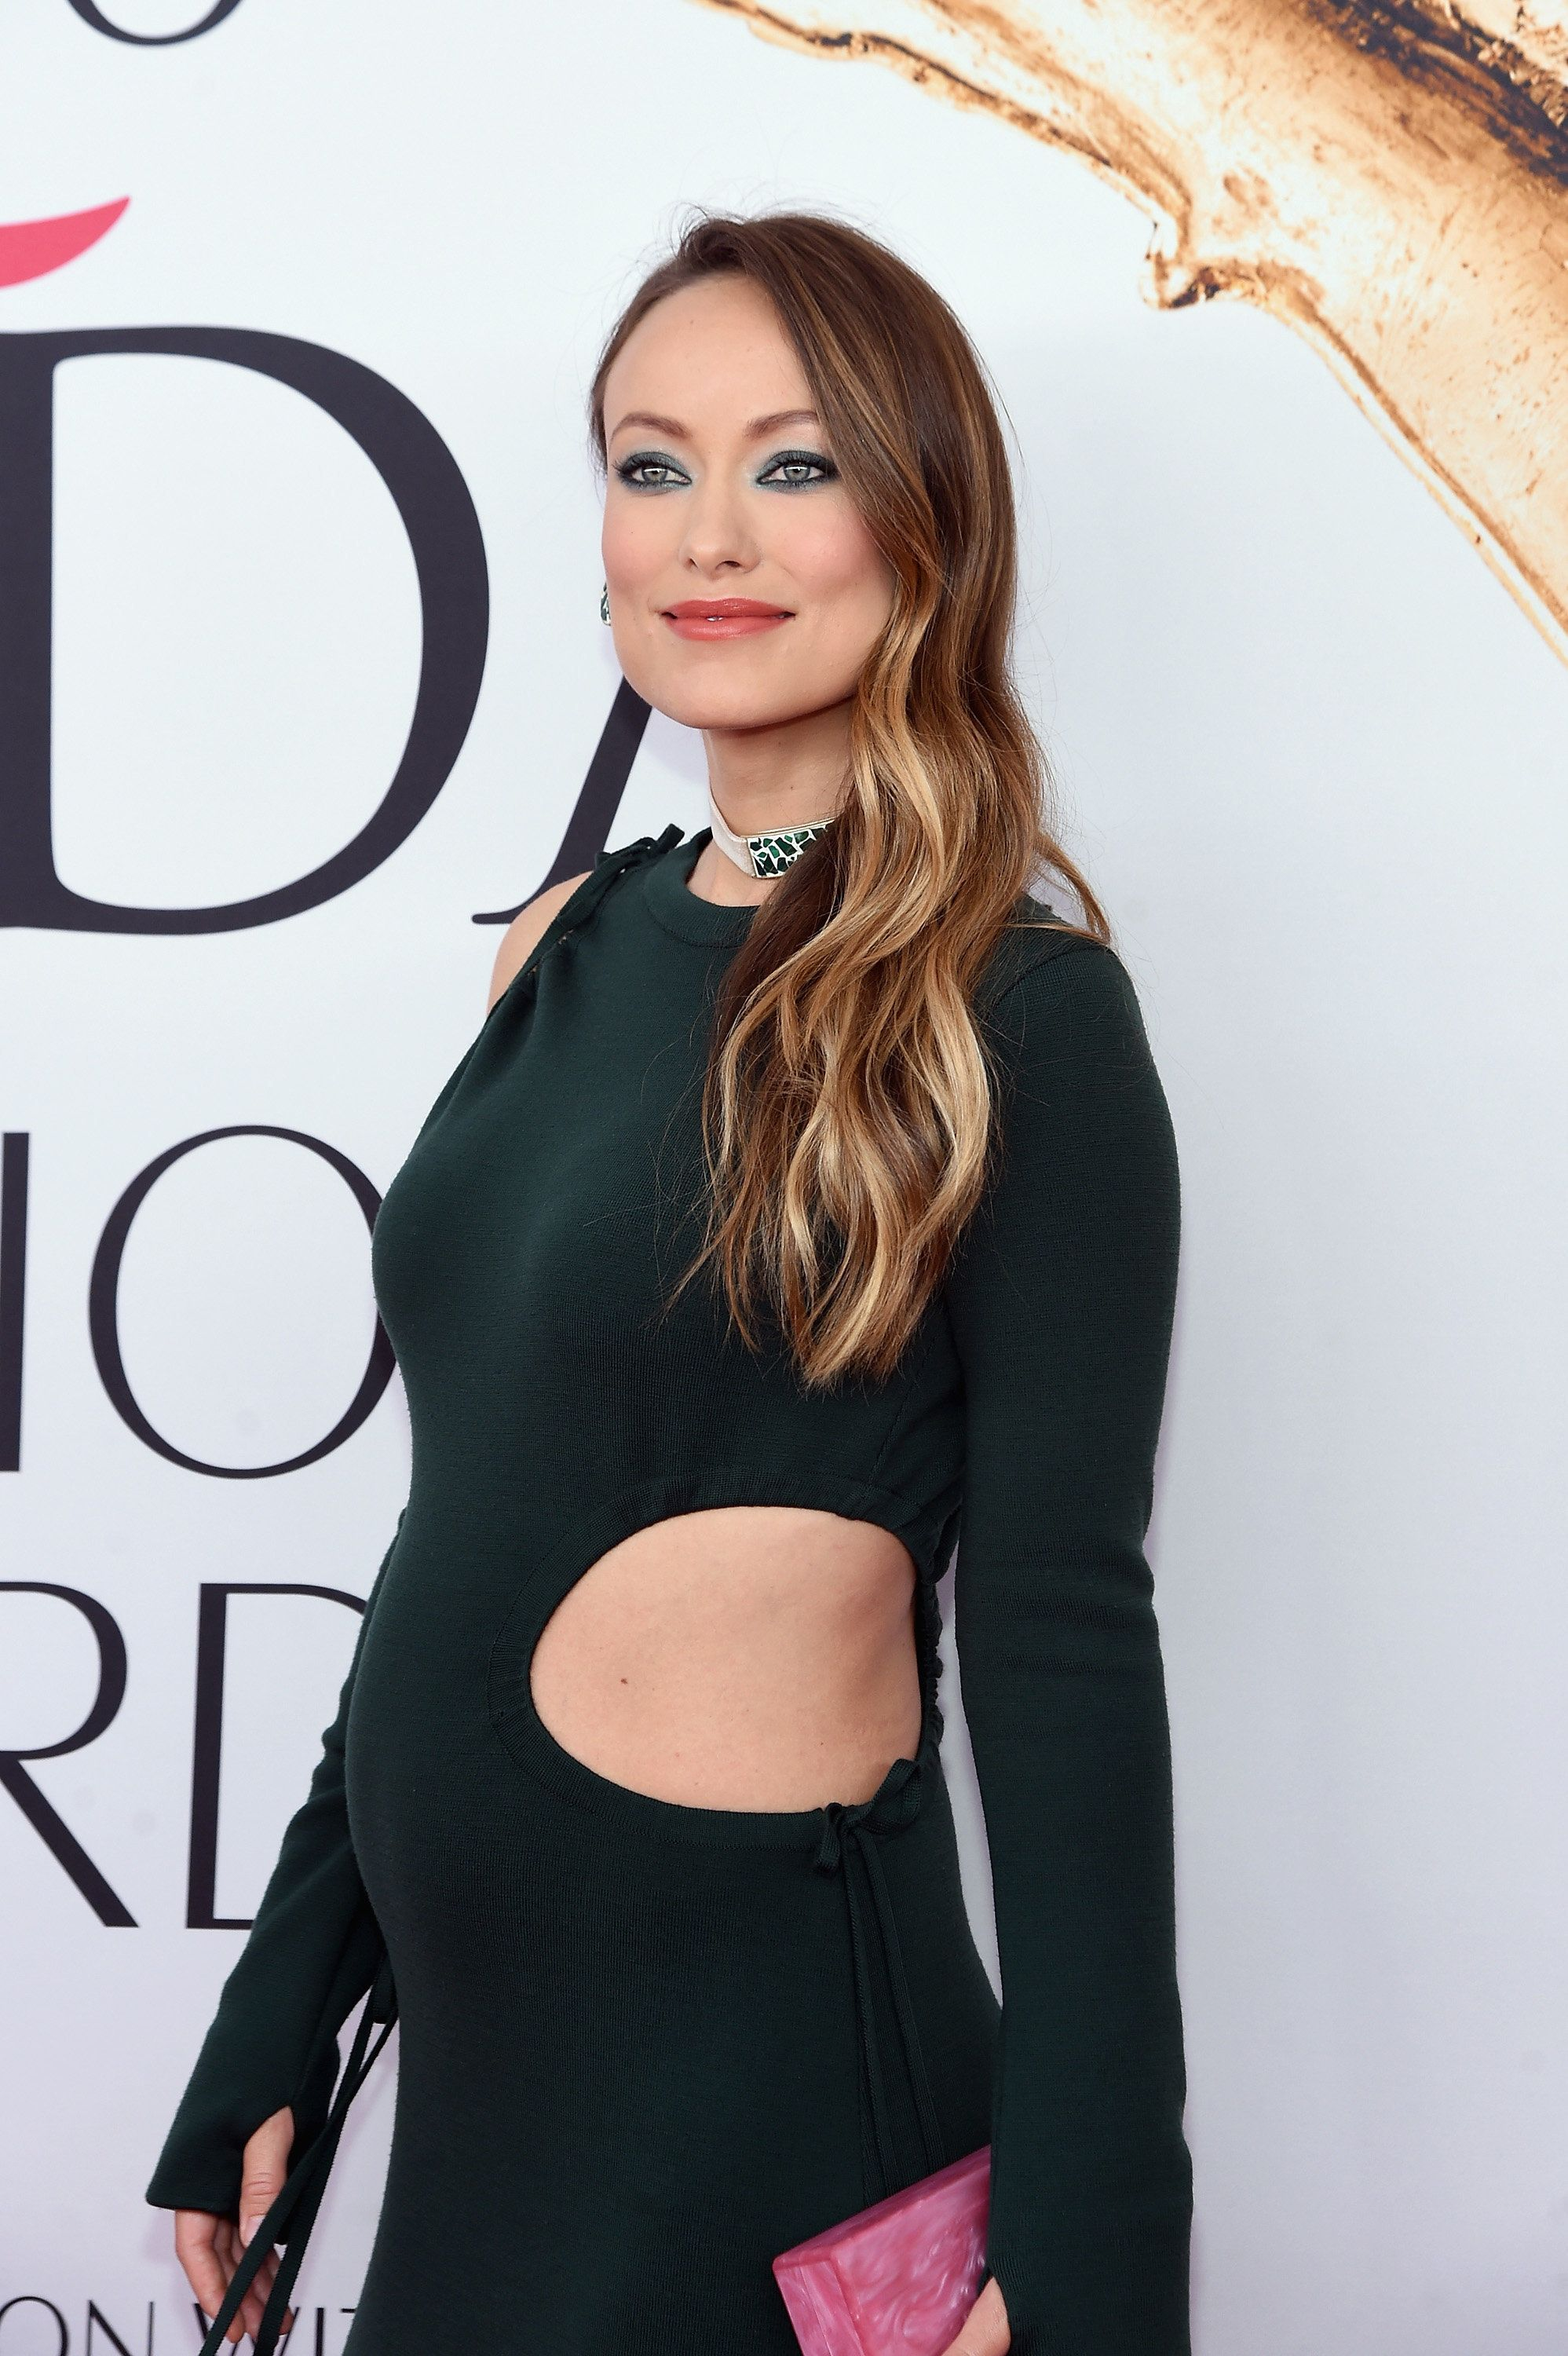 NEW YORK, NY - JUNE 06:  Actress Olivia Wilde attends the 2016 CFDA Fashion Awards at the Hammerstein Ballroom on June 6, 2016 in New York City.  (Photo by Jamie McCarthy/Getty Images)